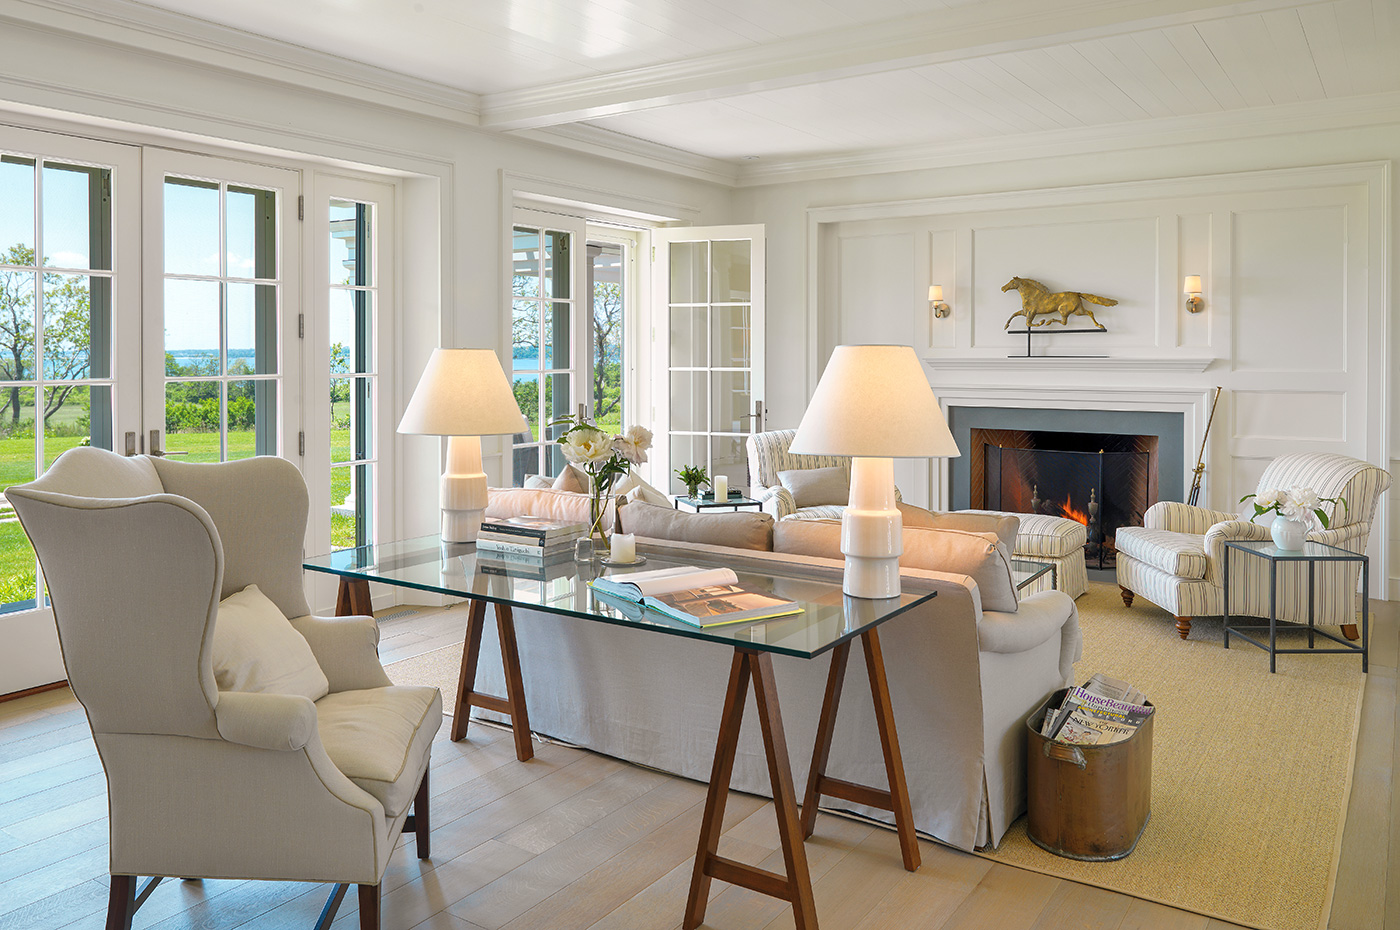 Work desk in a gracious living room designed by Mellowes + Palladino Architects